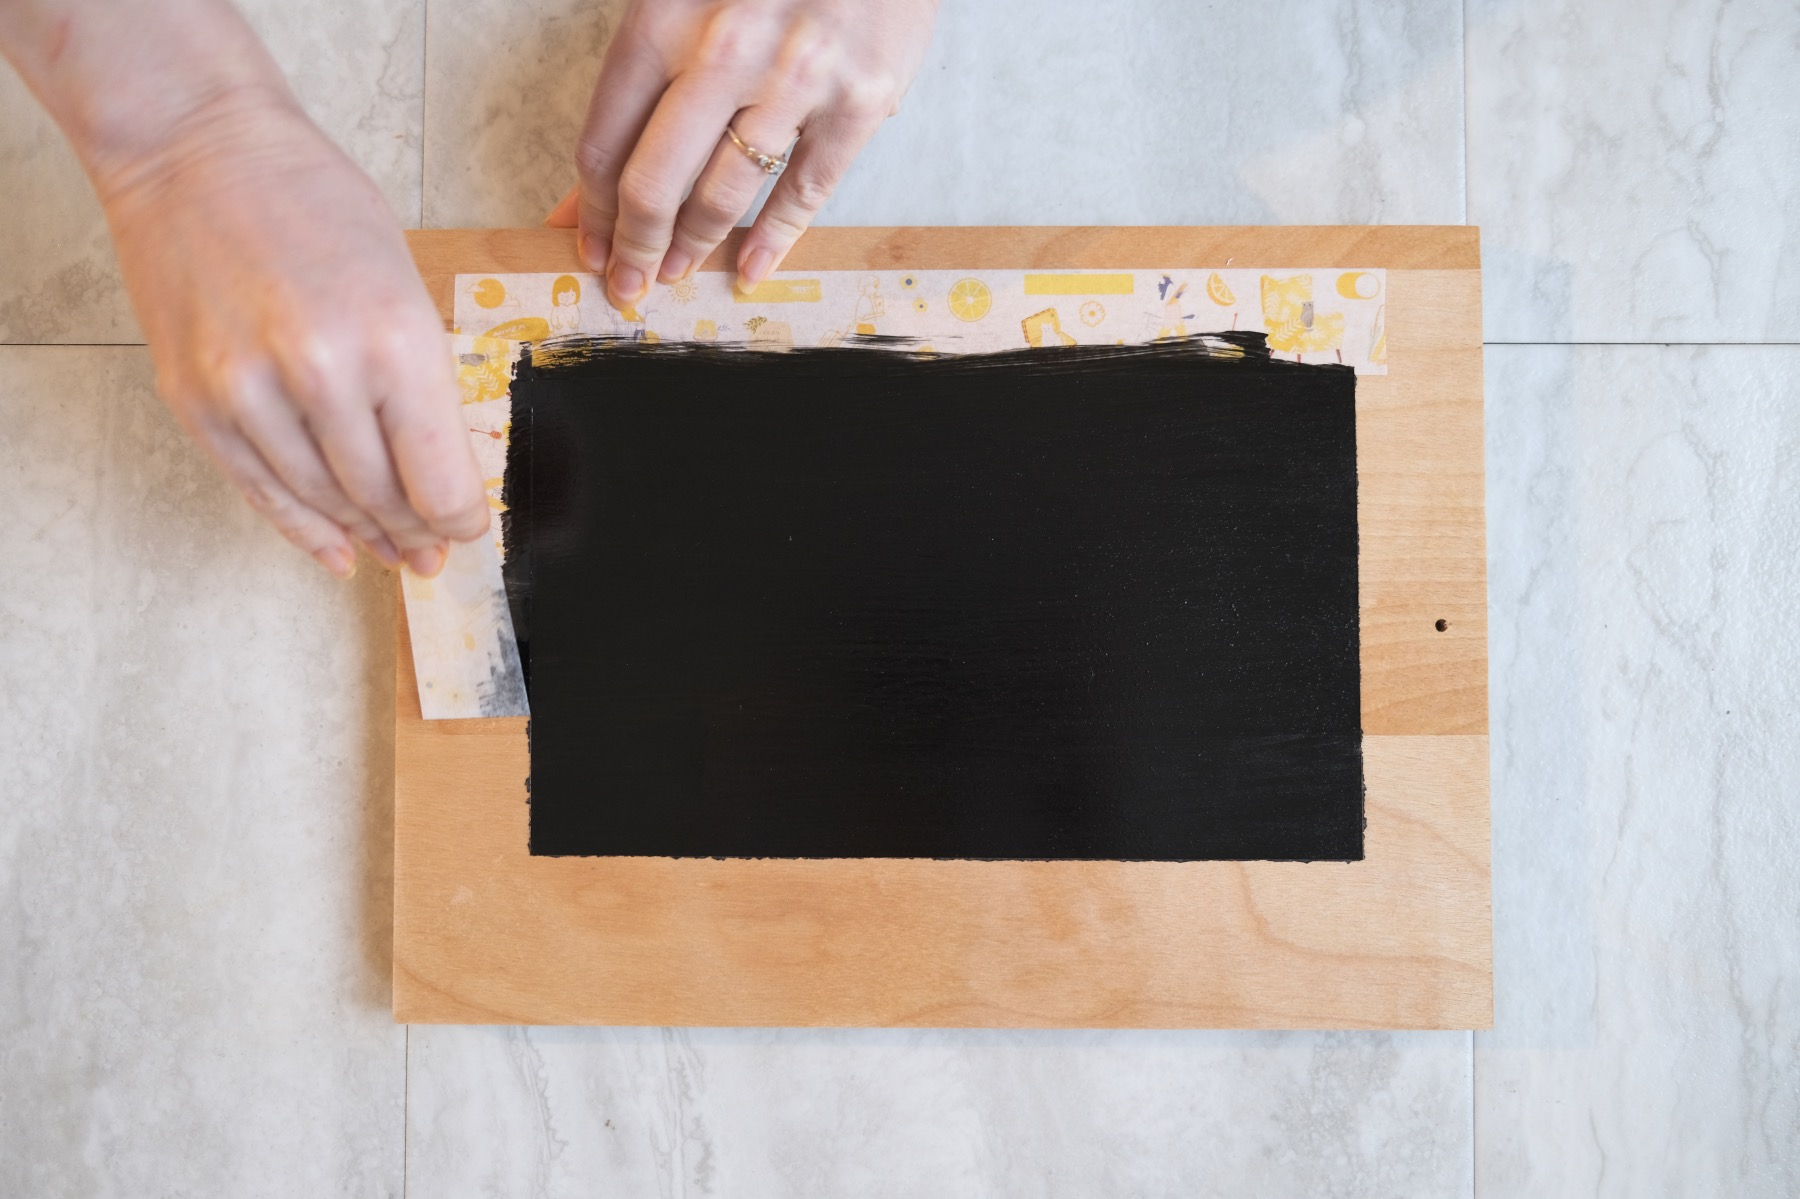 removing washi tape to reveal chalkboard painted tray